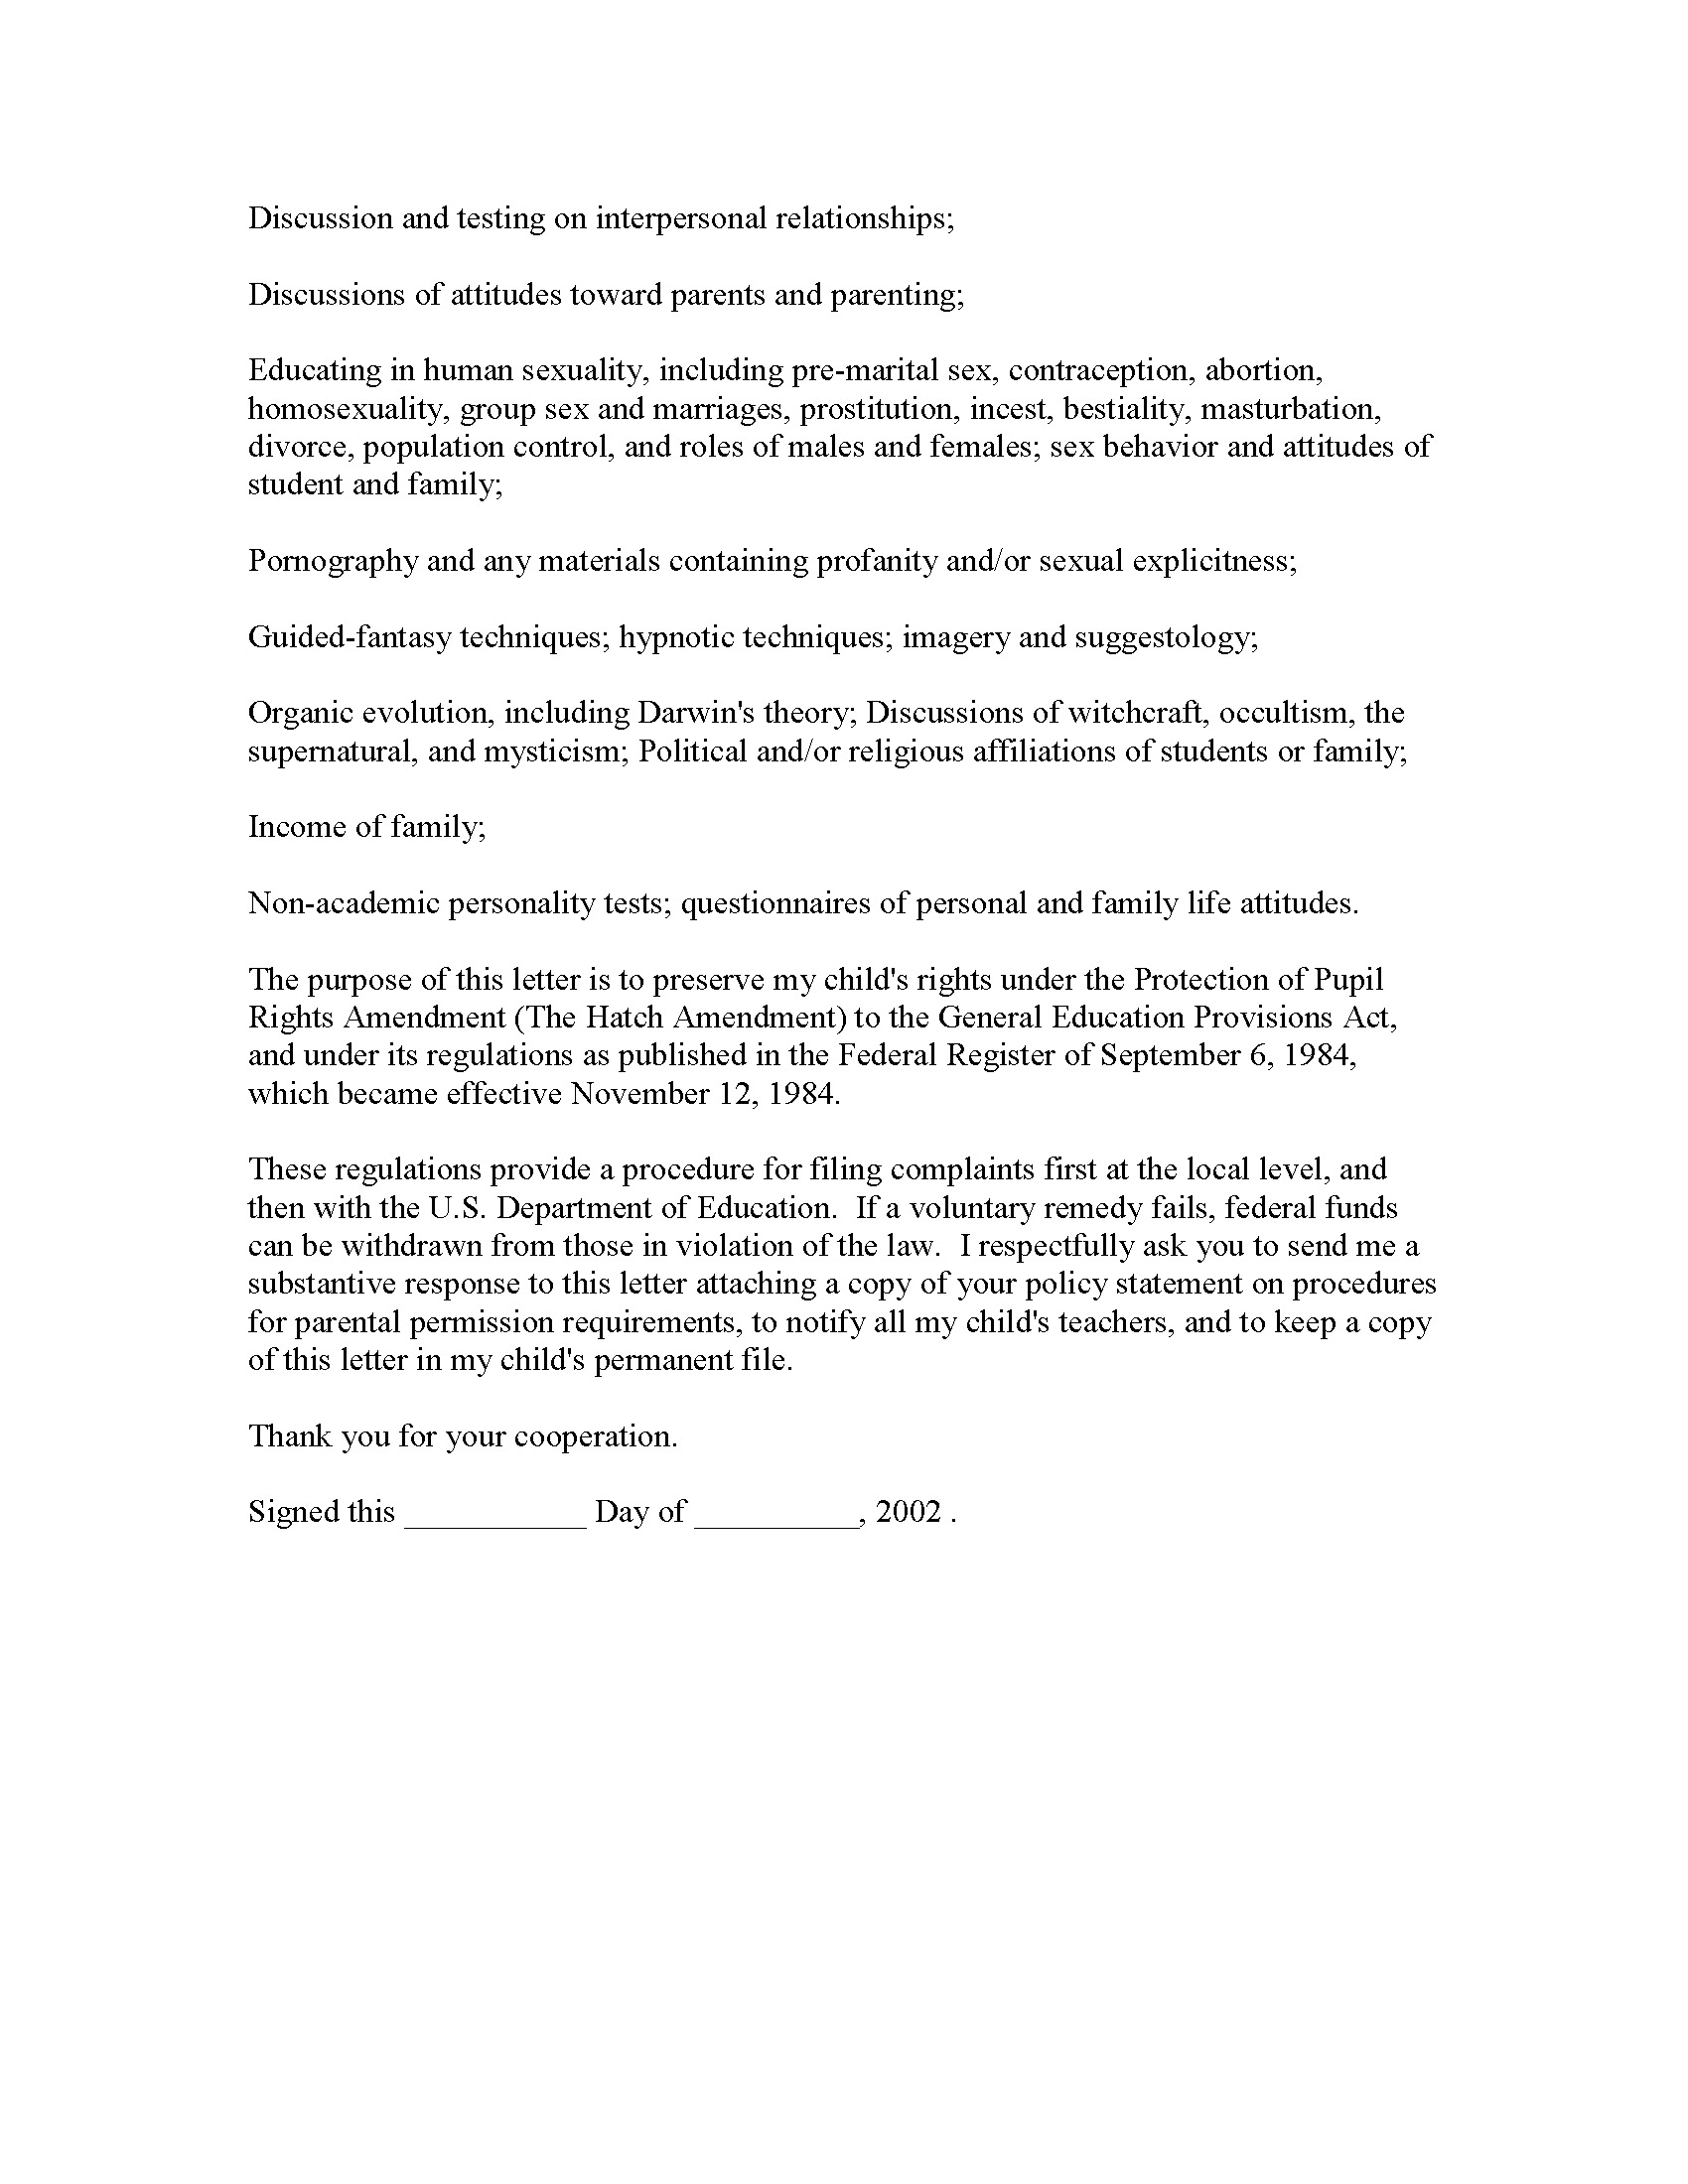 Sample Declaration Letter For Child Custody